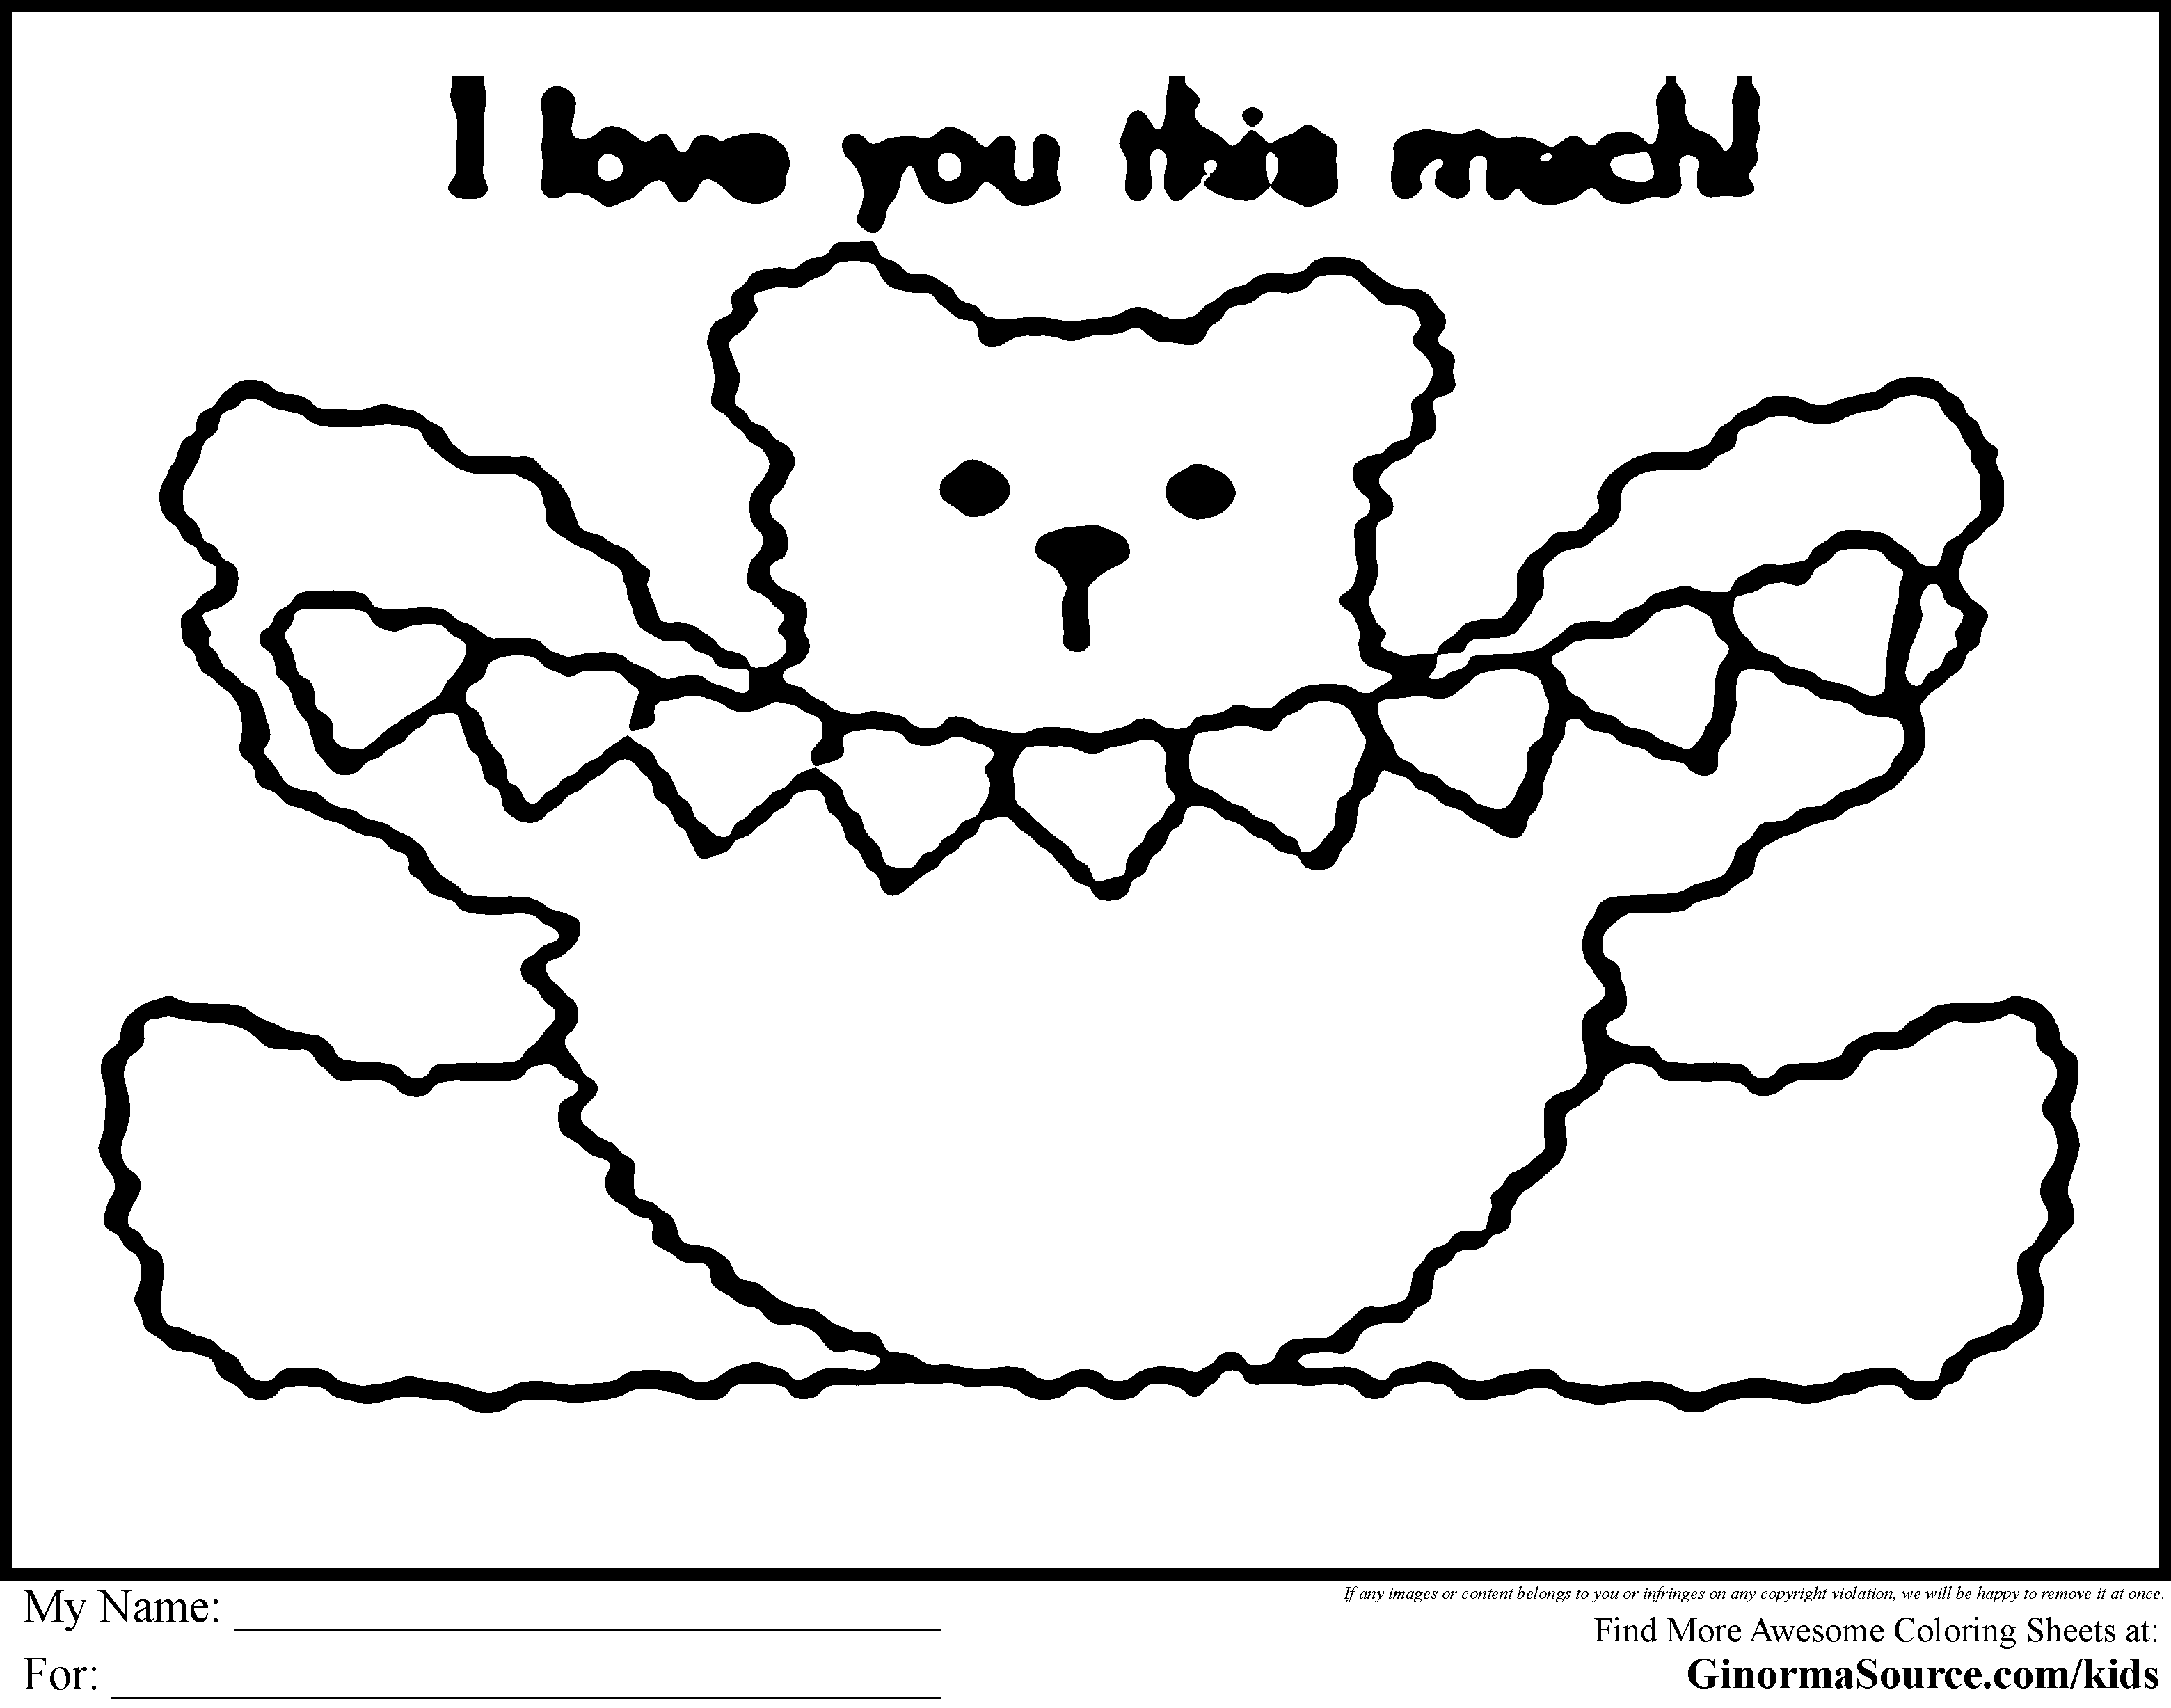 coloring sheets you can print coloring pages that you can print out at getdrawings sheets coloring you print can